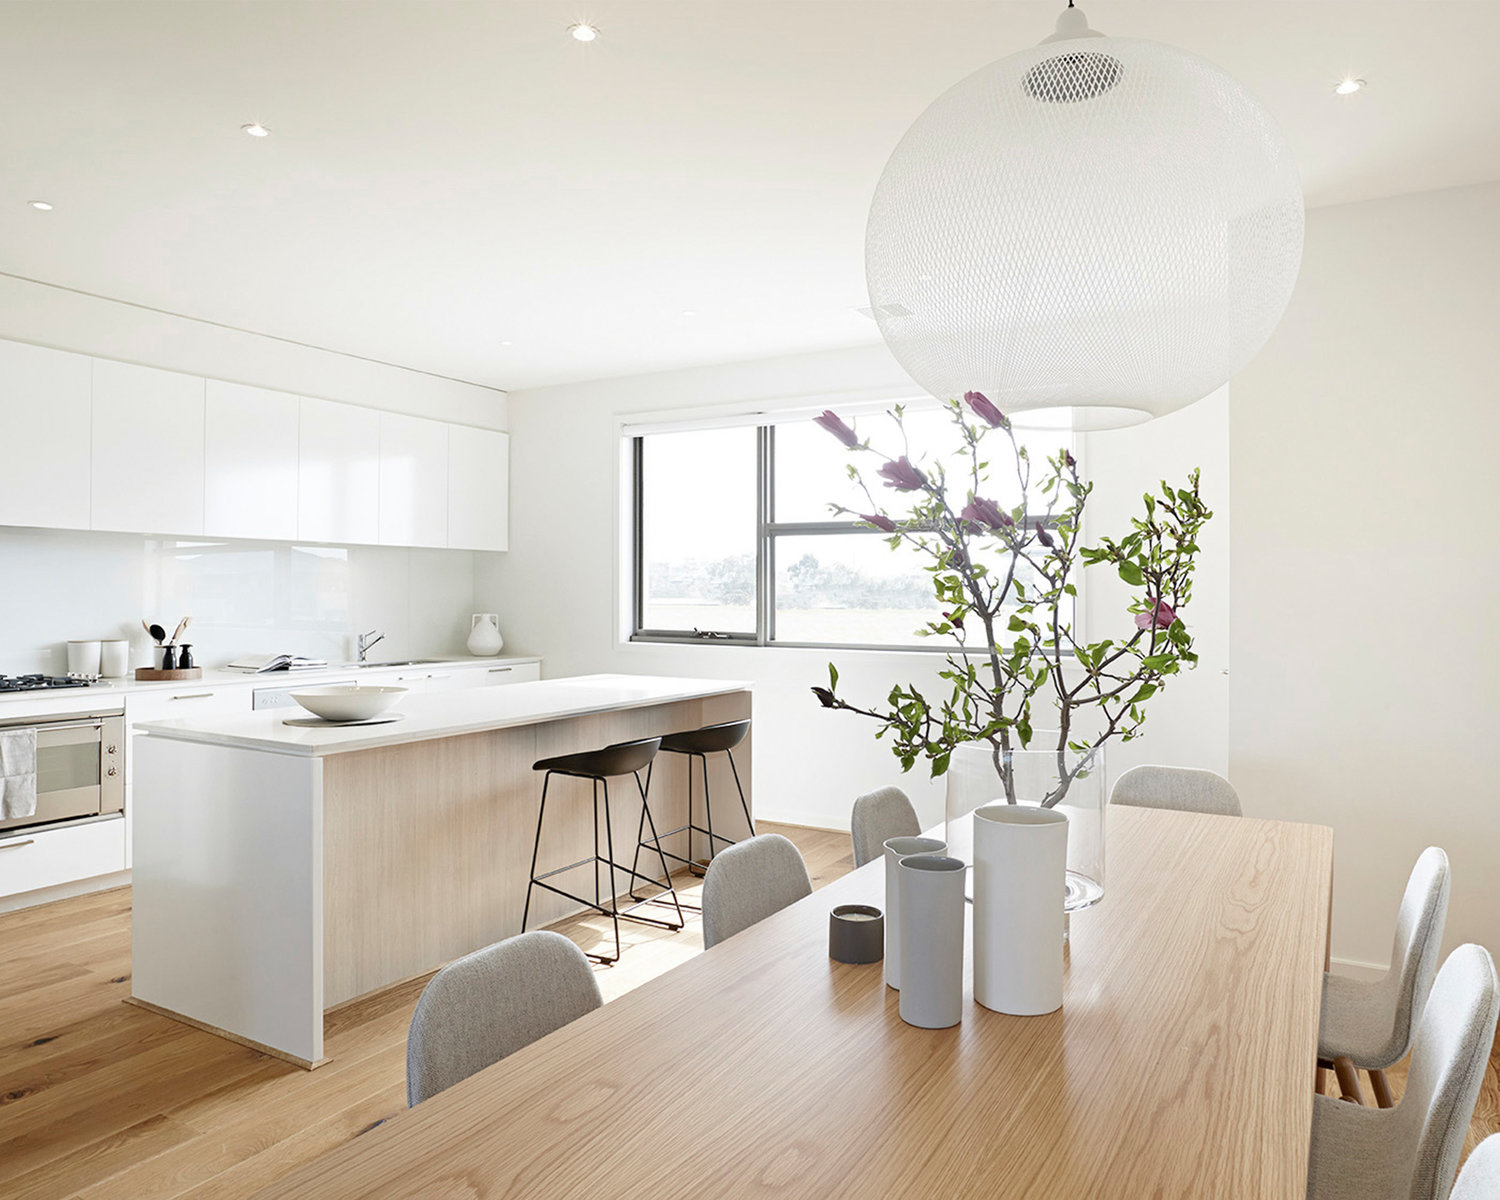 Enclave for Mirvac | Image courtesy of Mirvac | Photographed by Andy Gibson